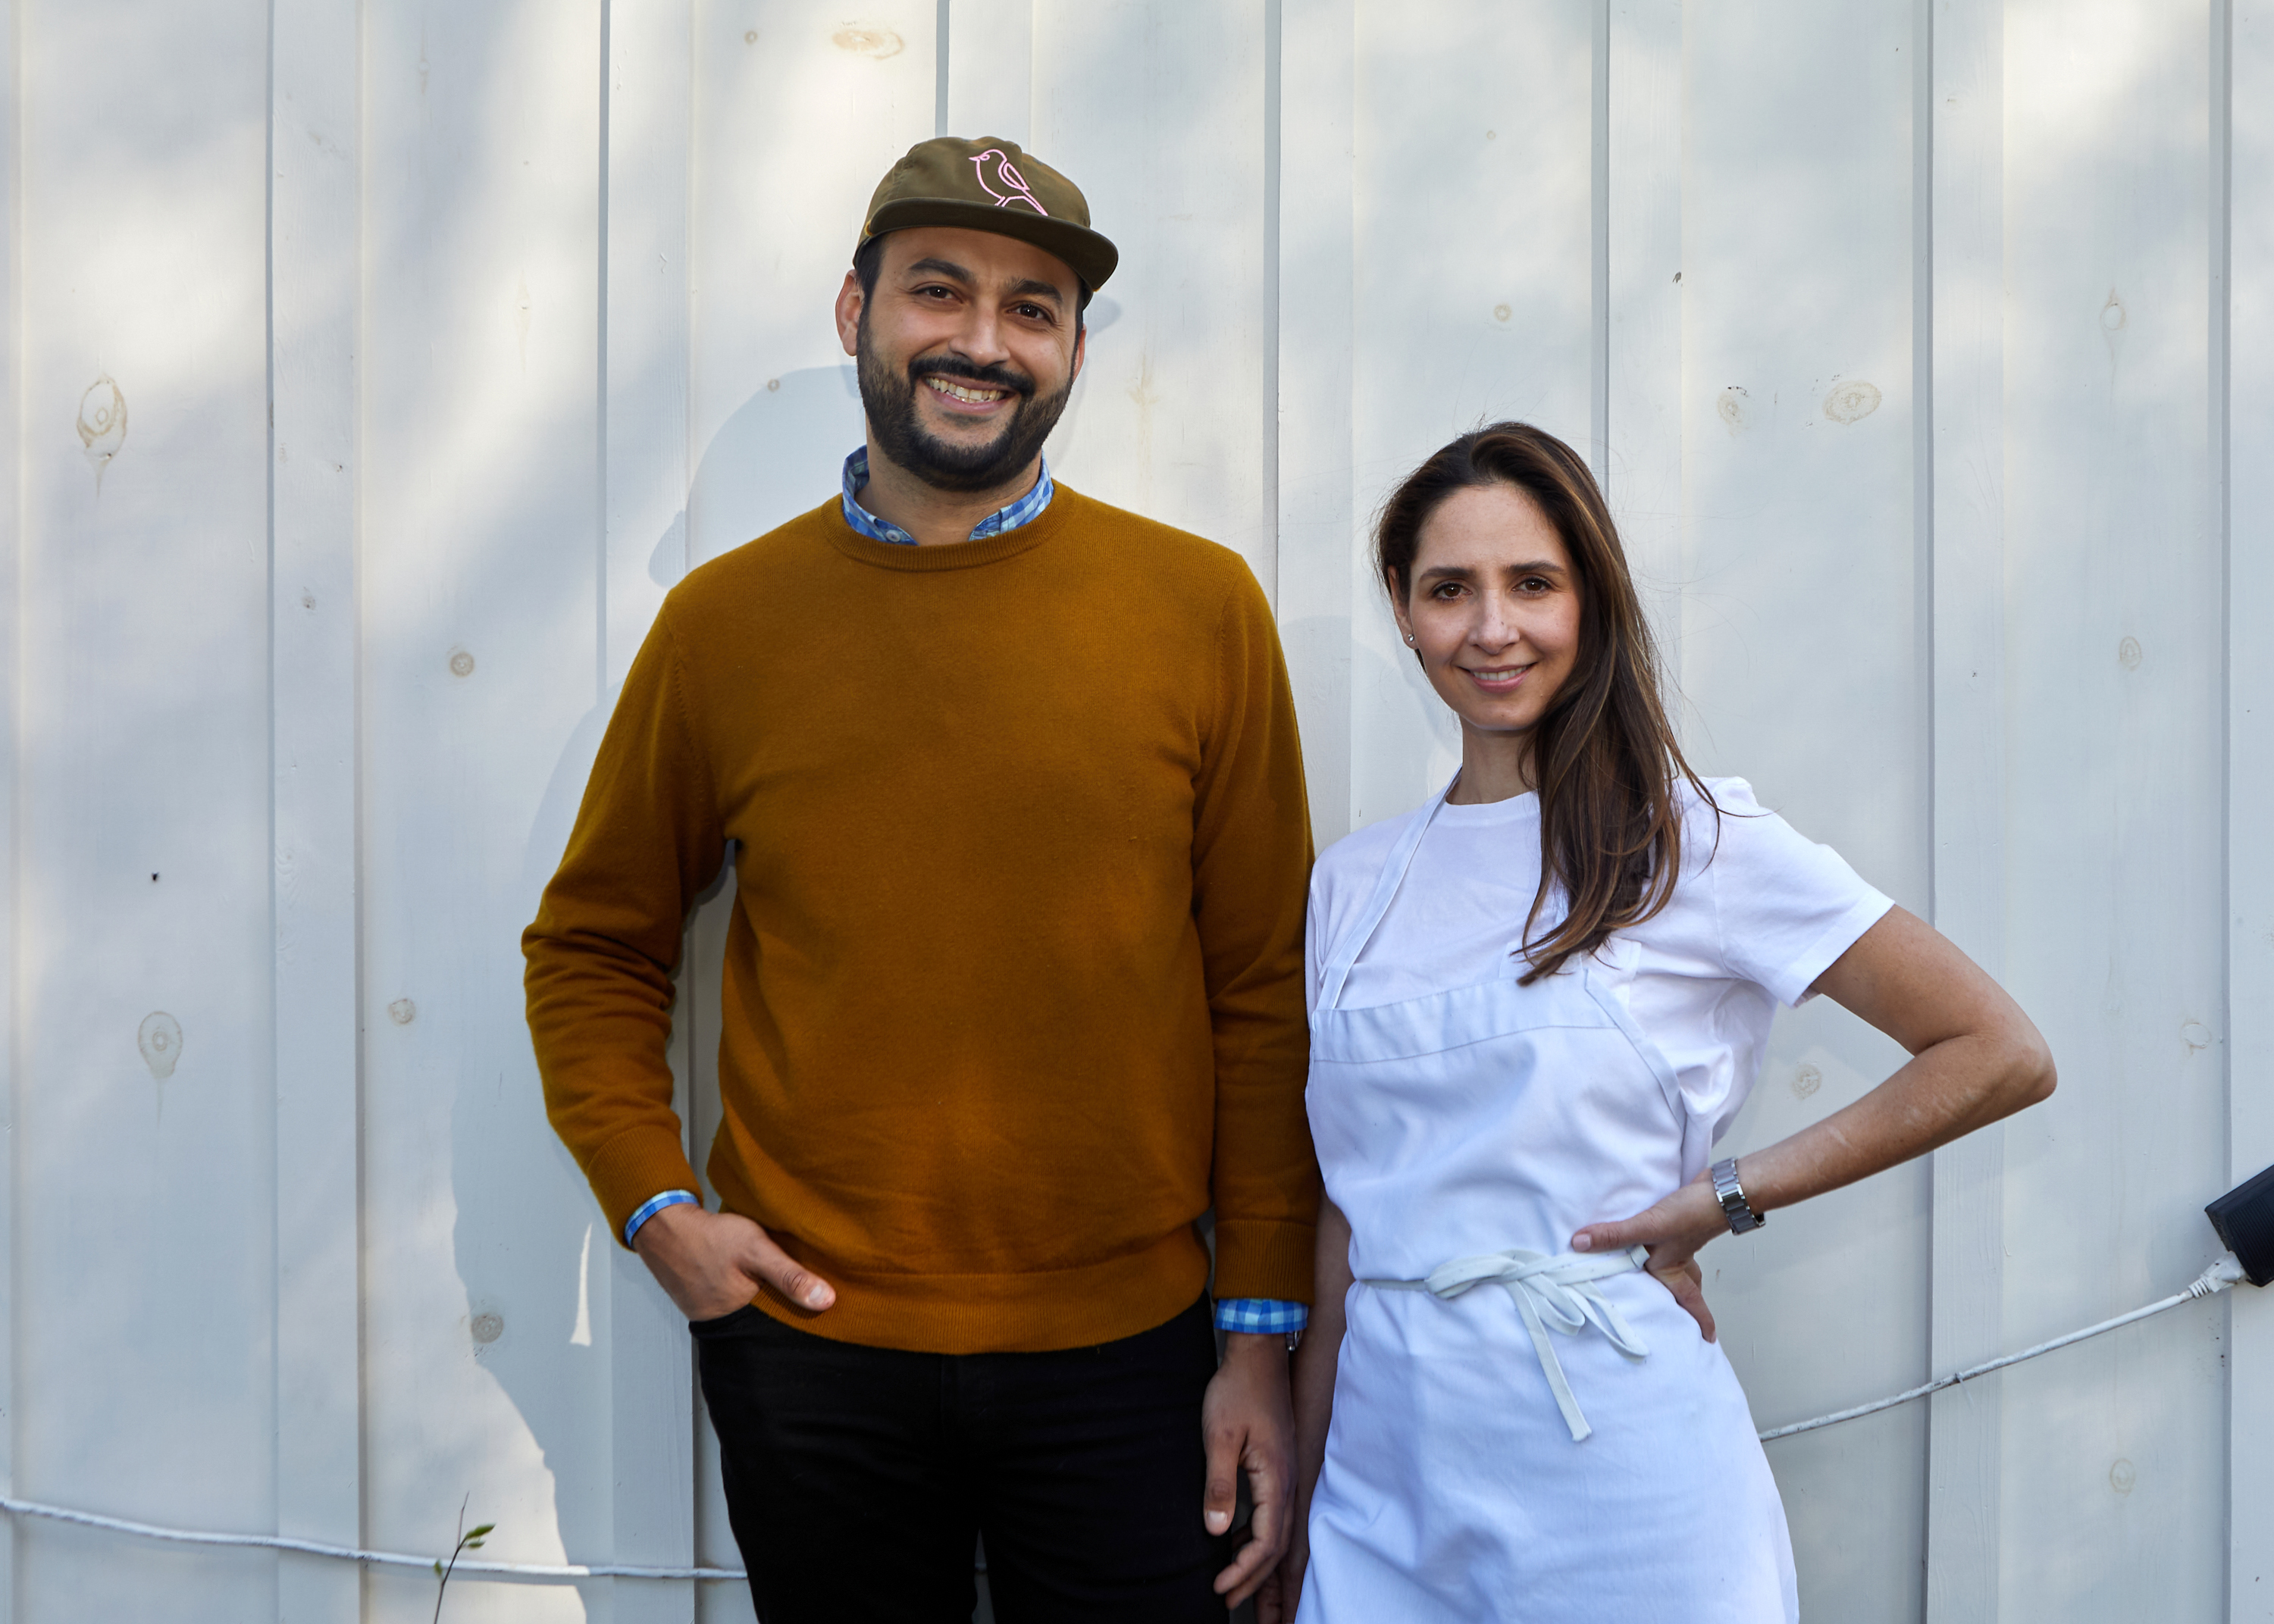 A man and a woman in a white apron standing in front of a white wall